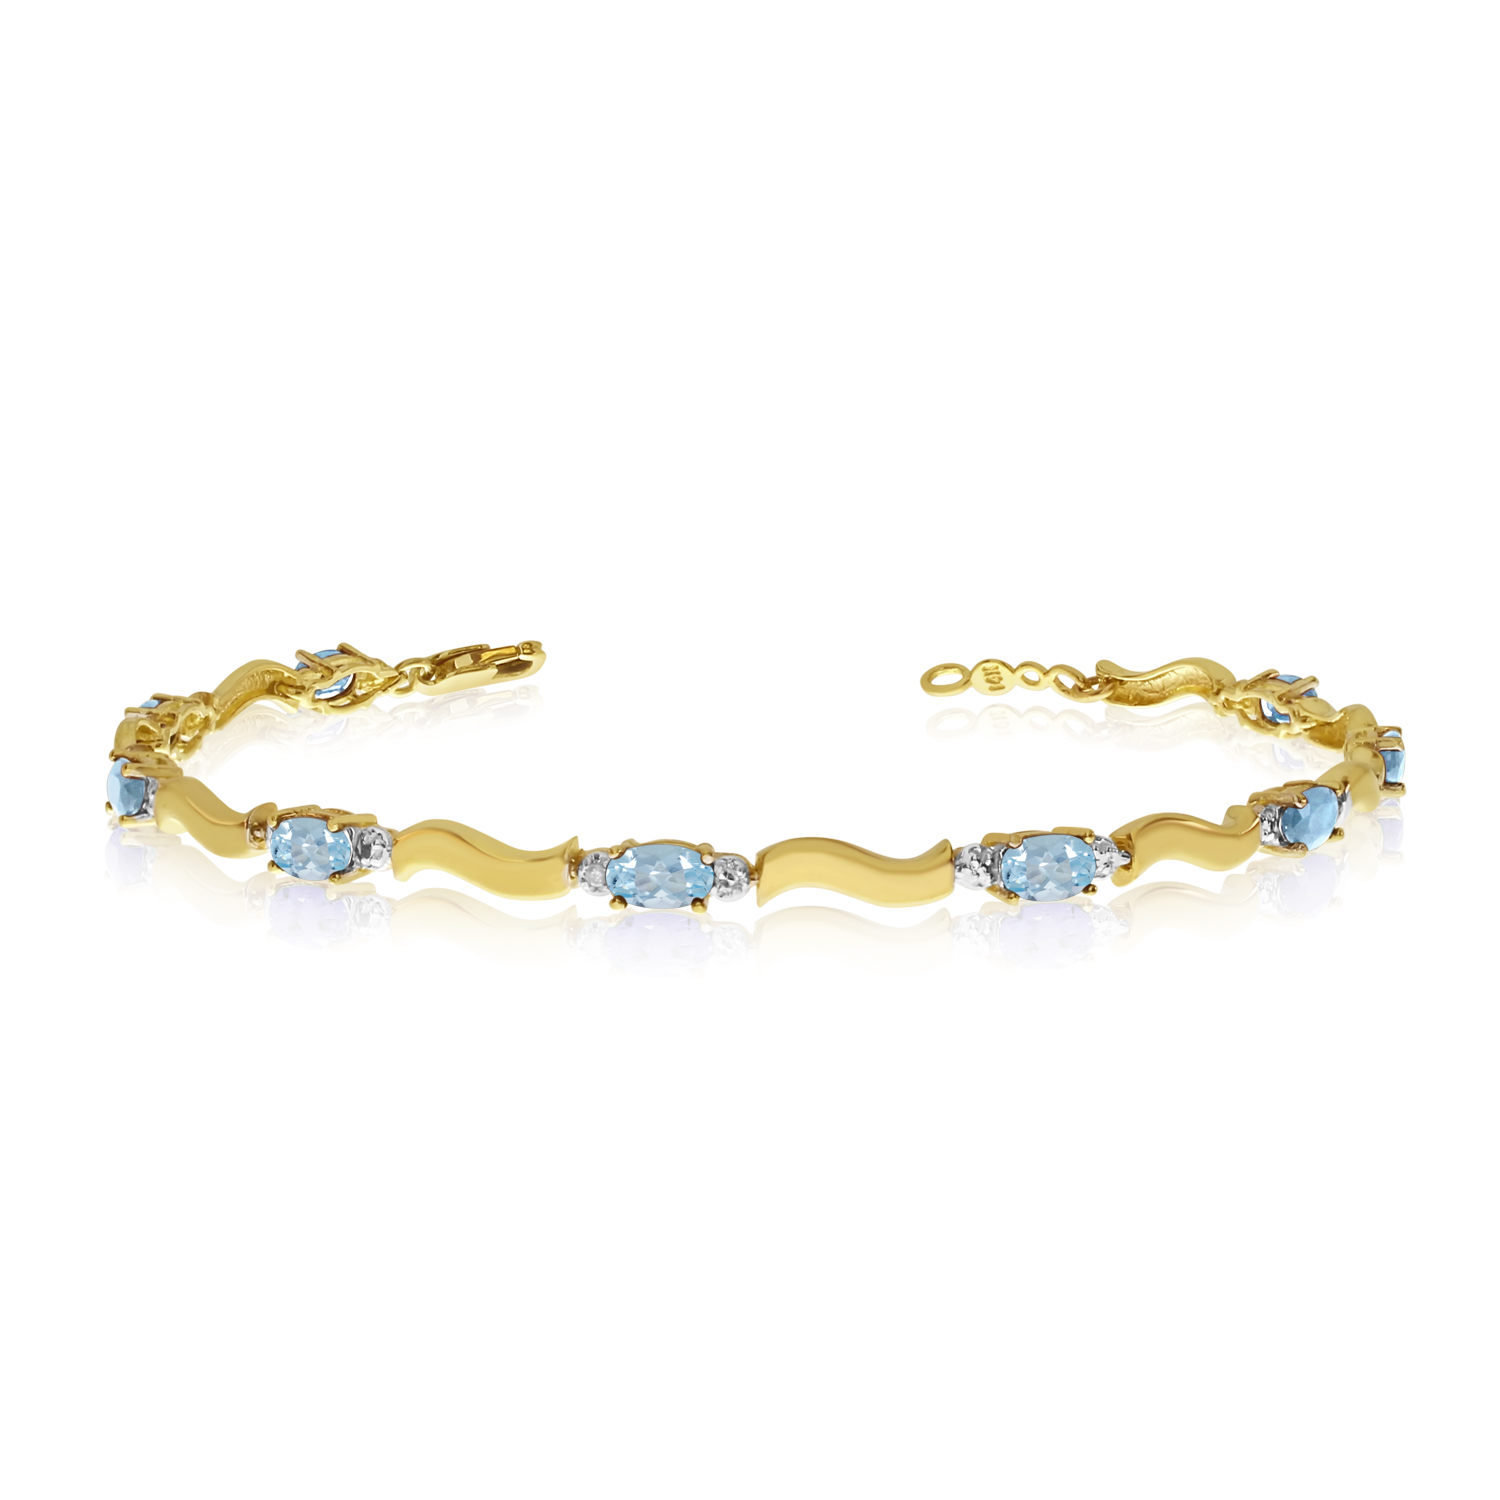 10K Yellow Gold Oval Aquamarine and Diamond Bracelet by